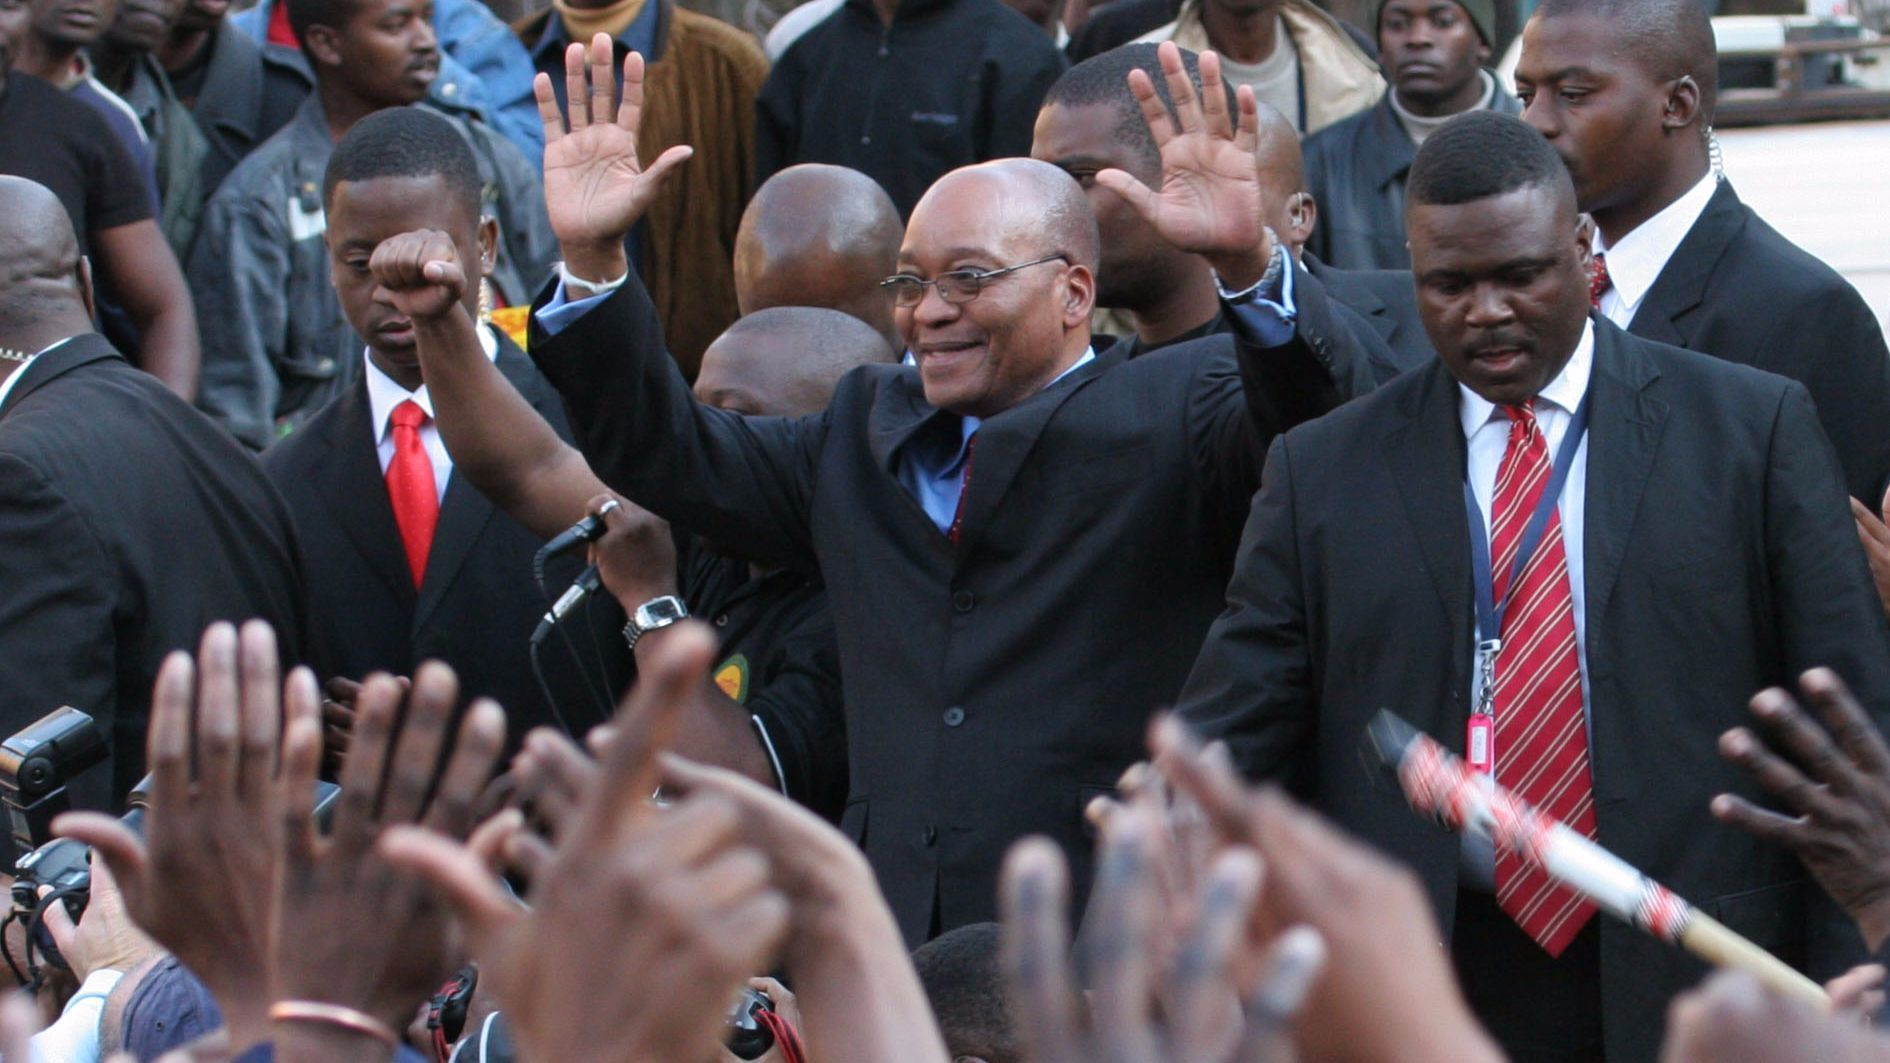 Supporters cheer Jacob Zuma after his acquittal on rape charges in 2006, clearing the way for him to become party president.